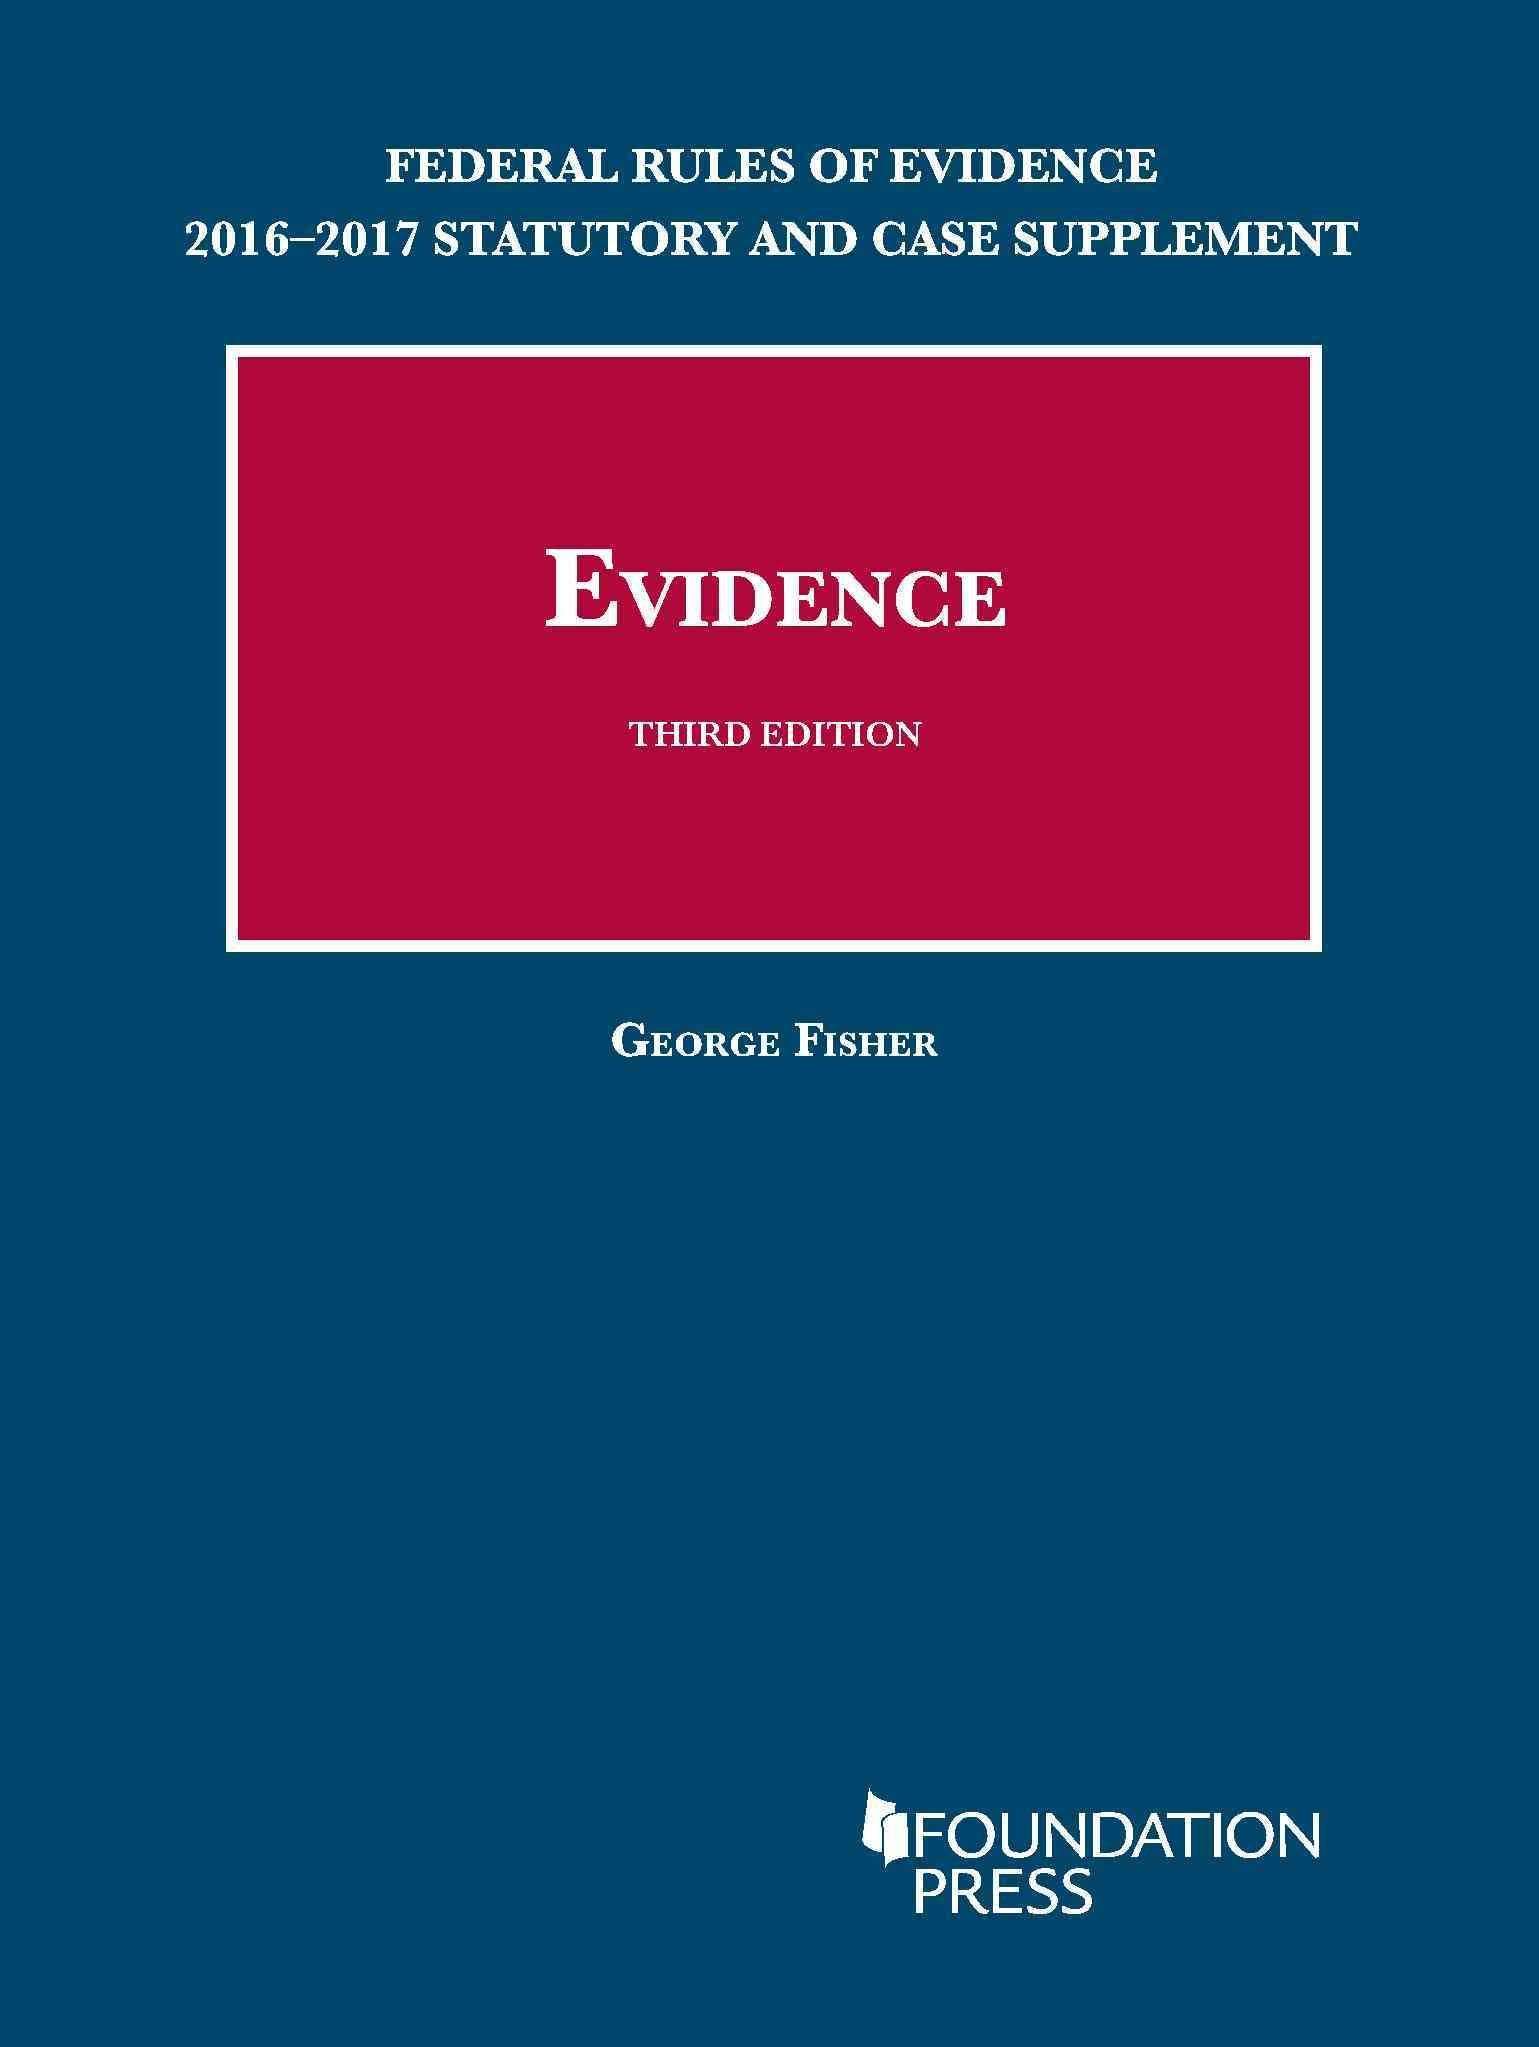 Federal Rules Of Evidence Statutory And Case